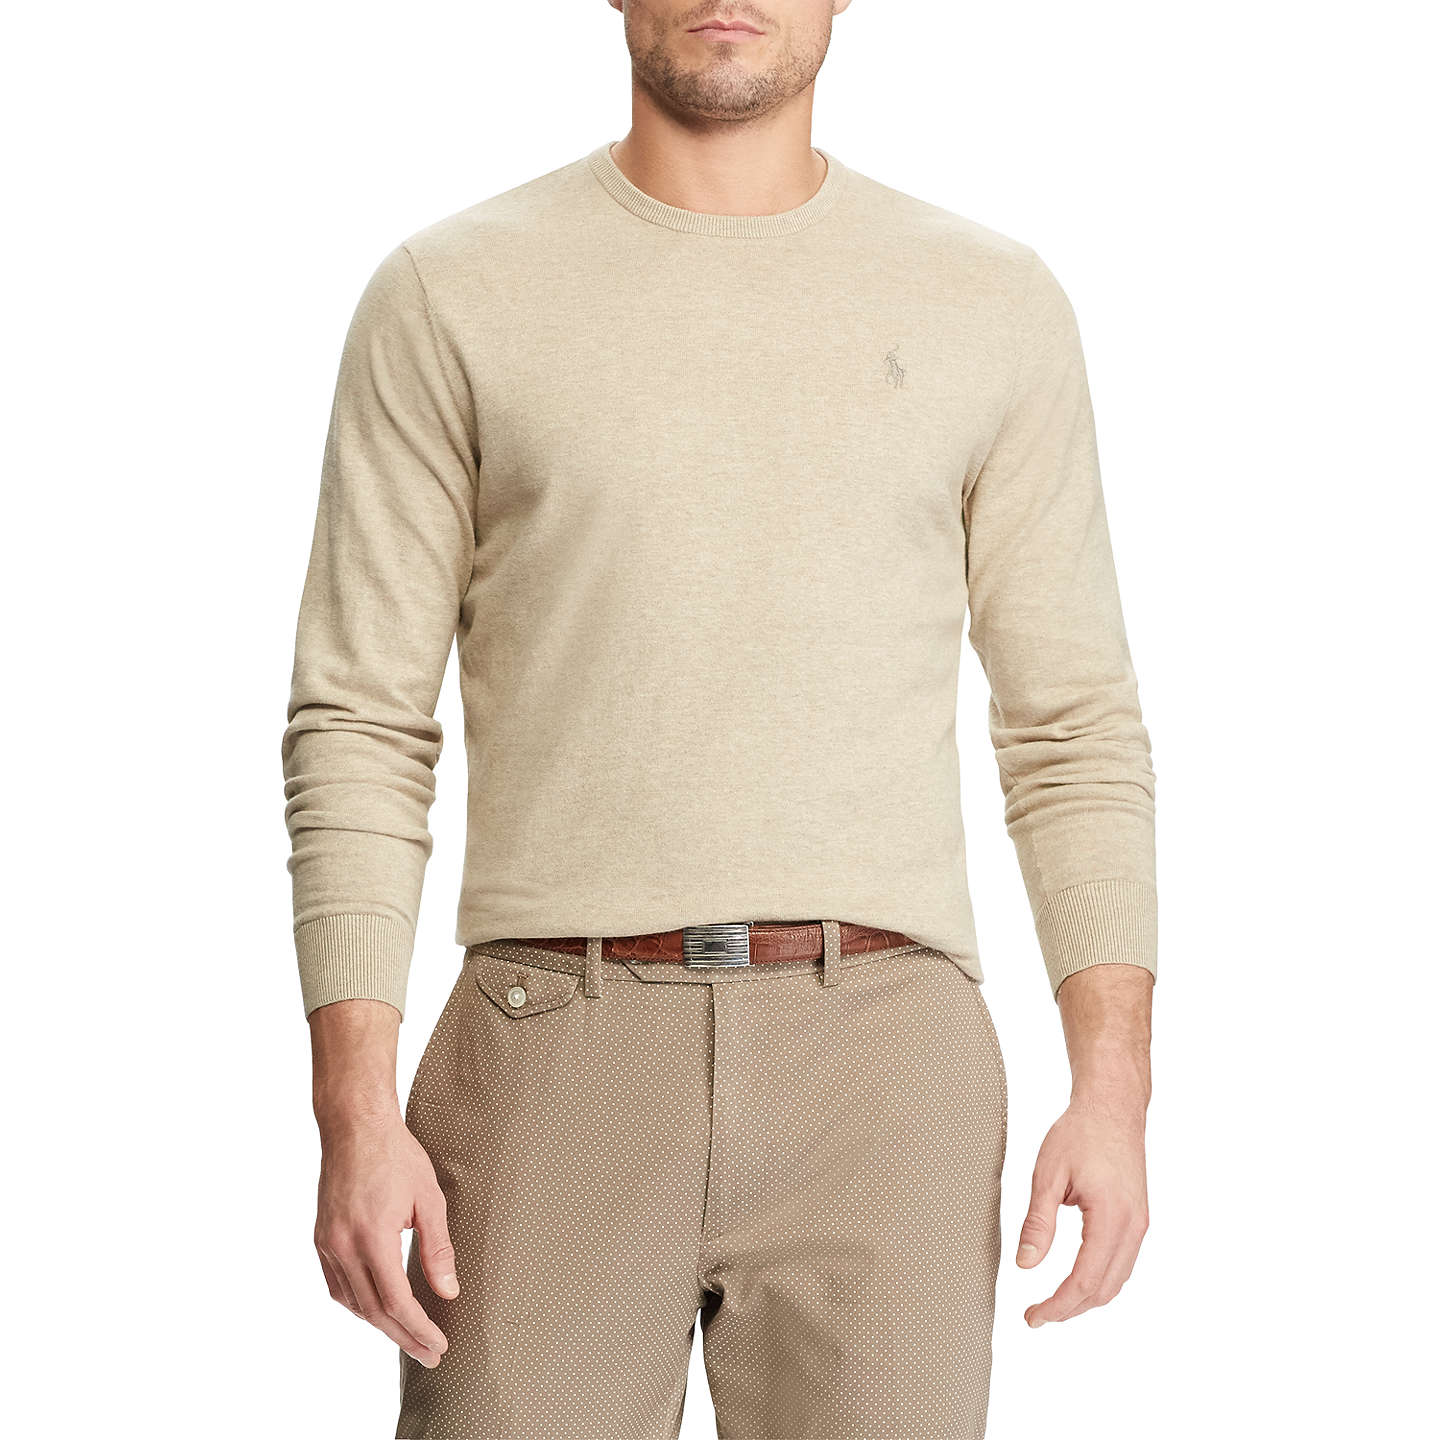 BuyPolo Golf by Ralph Lauren Long Sleeve Crew Neck Sweater, Expedition Dune Heather, S Online at johnlewis.com